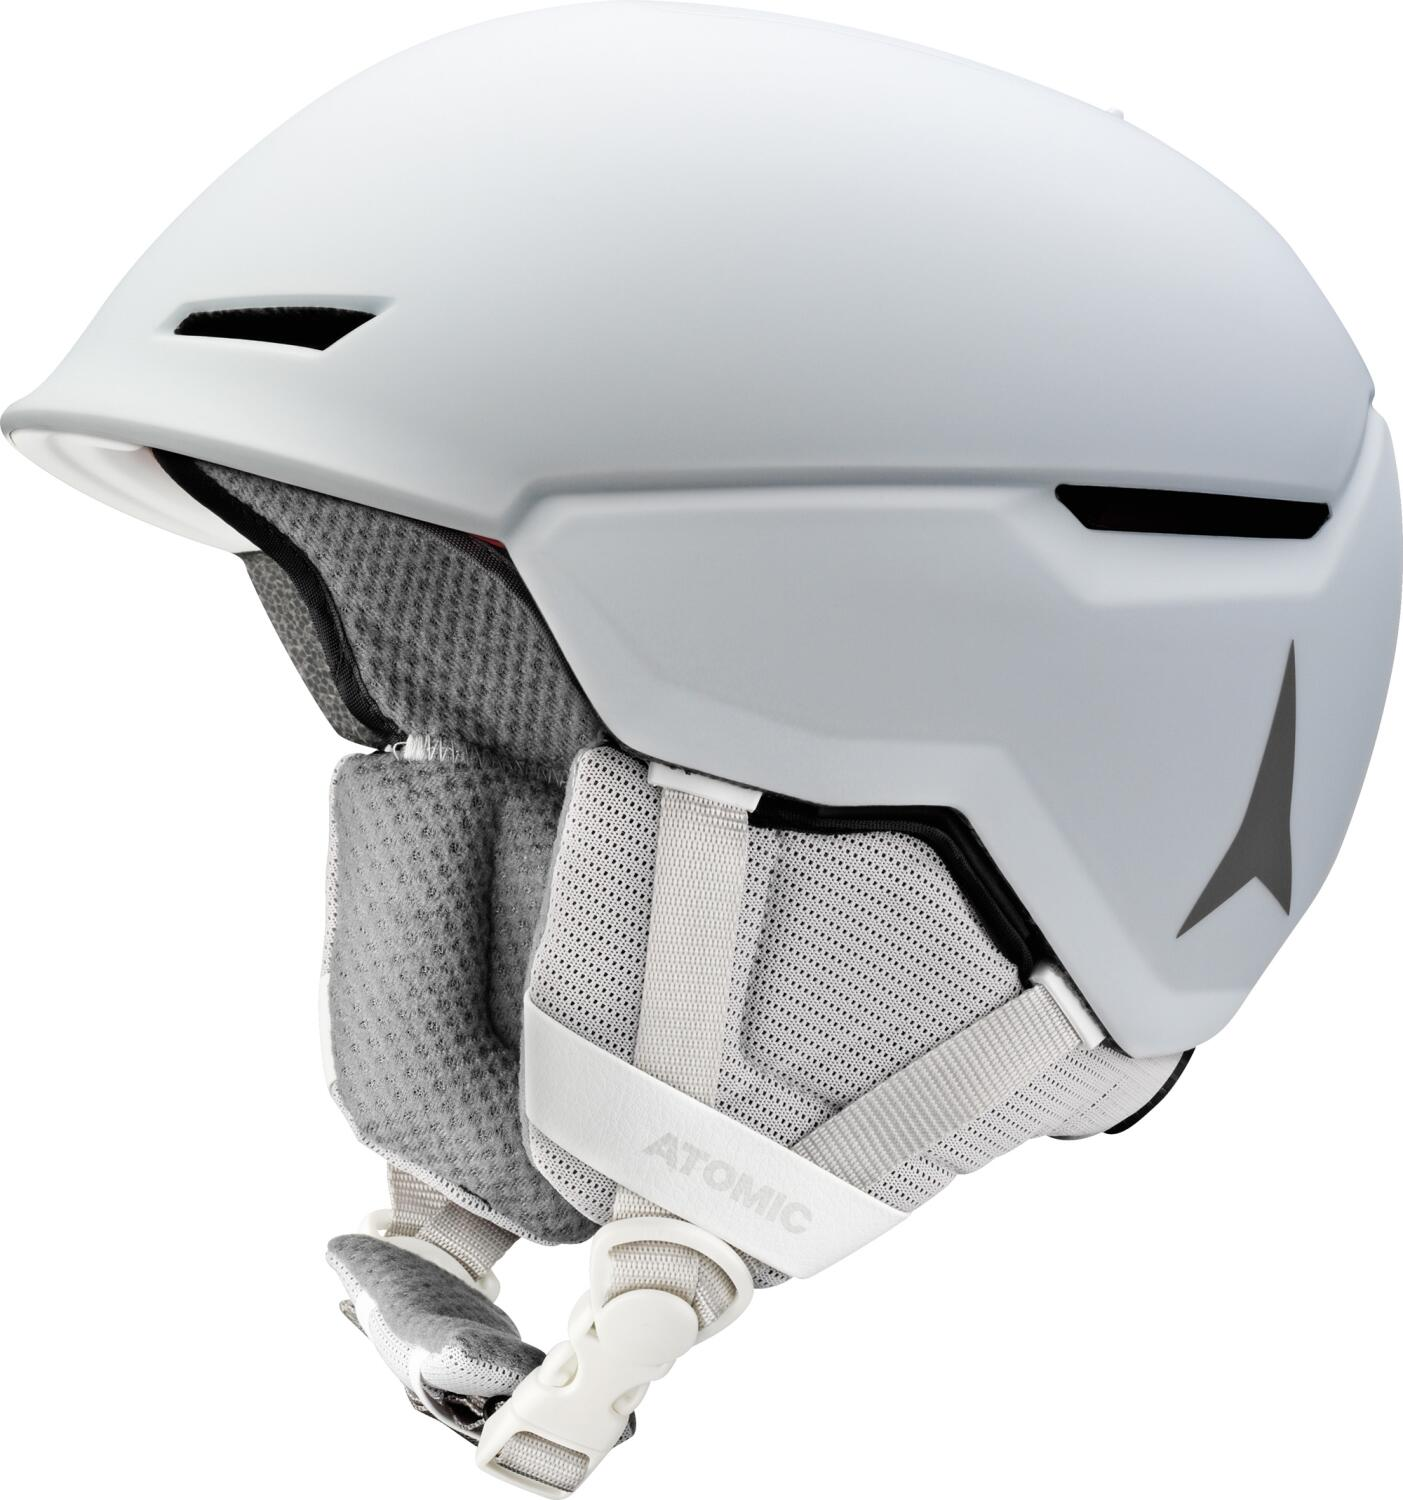 atomic-revent-all-mountain-skihelm-gr-ouml-szlig-e-51-55-cm-skyline-